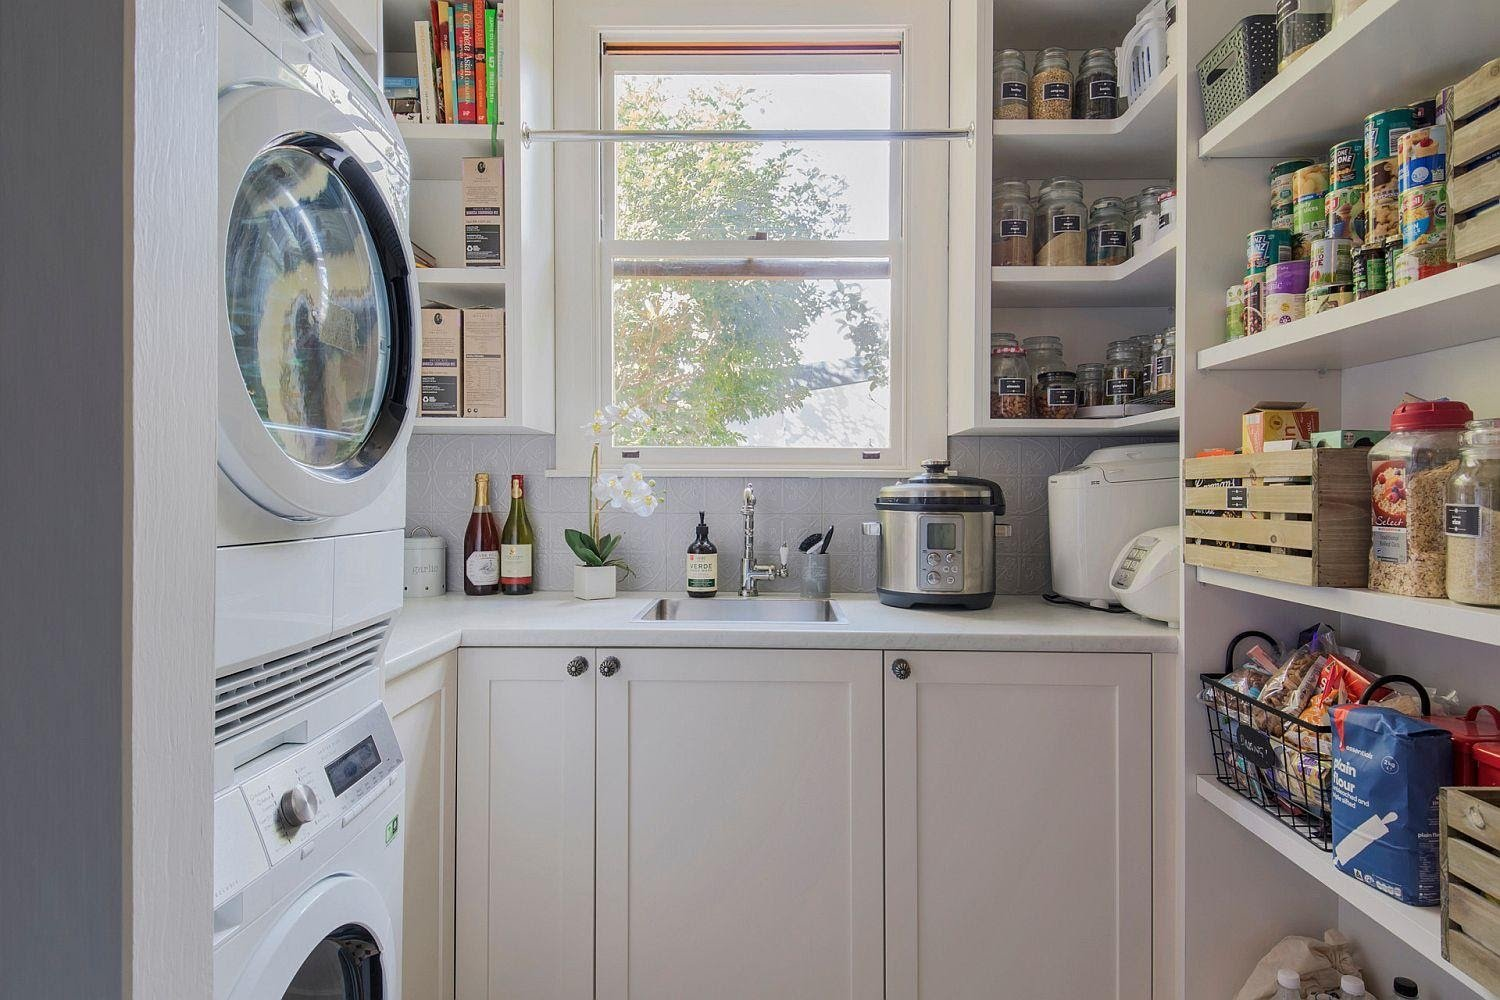 3. The Laundry Room and Pantry Combo by simphome.com